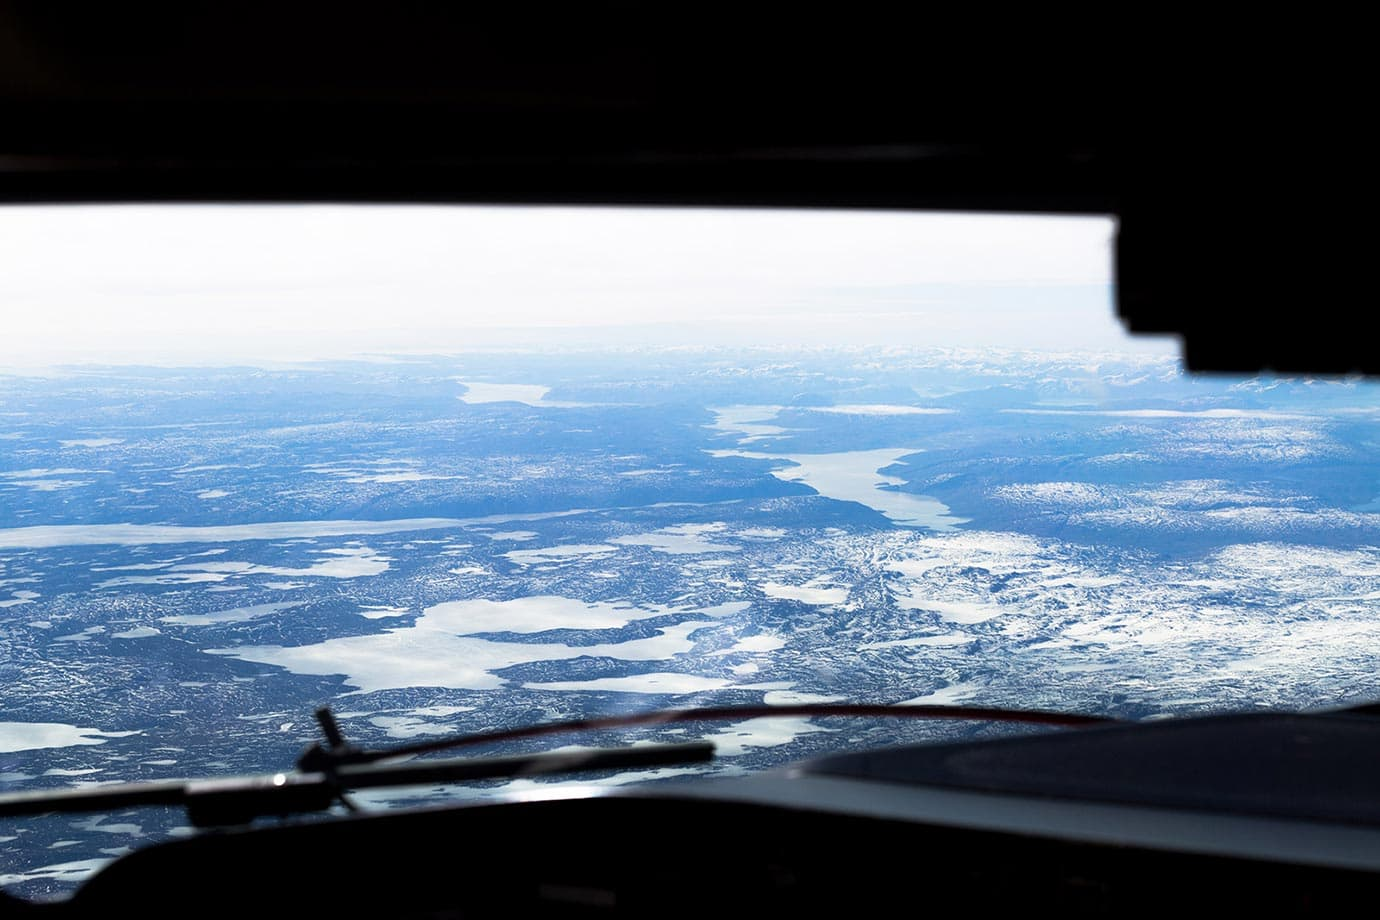 Views of flying over Greenland